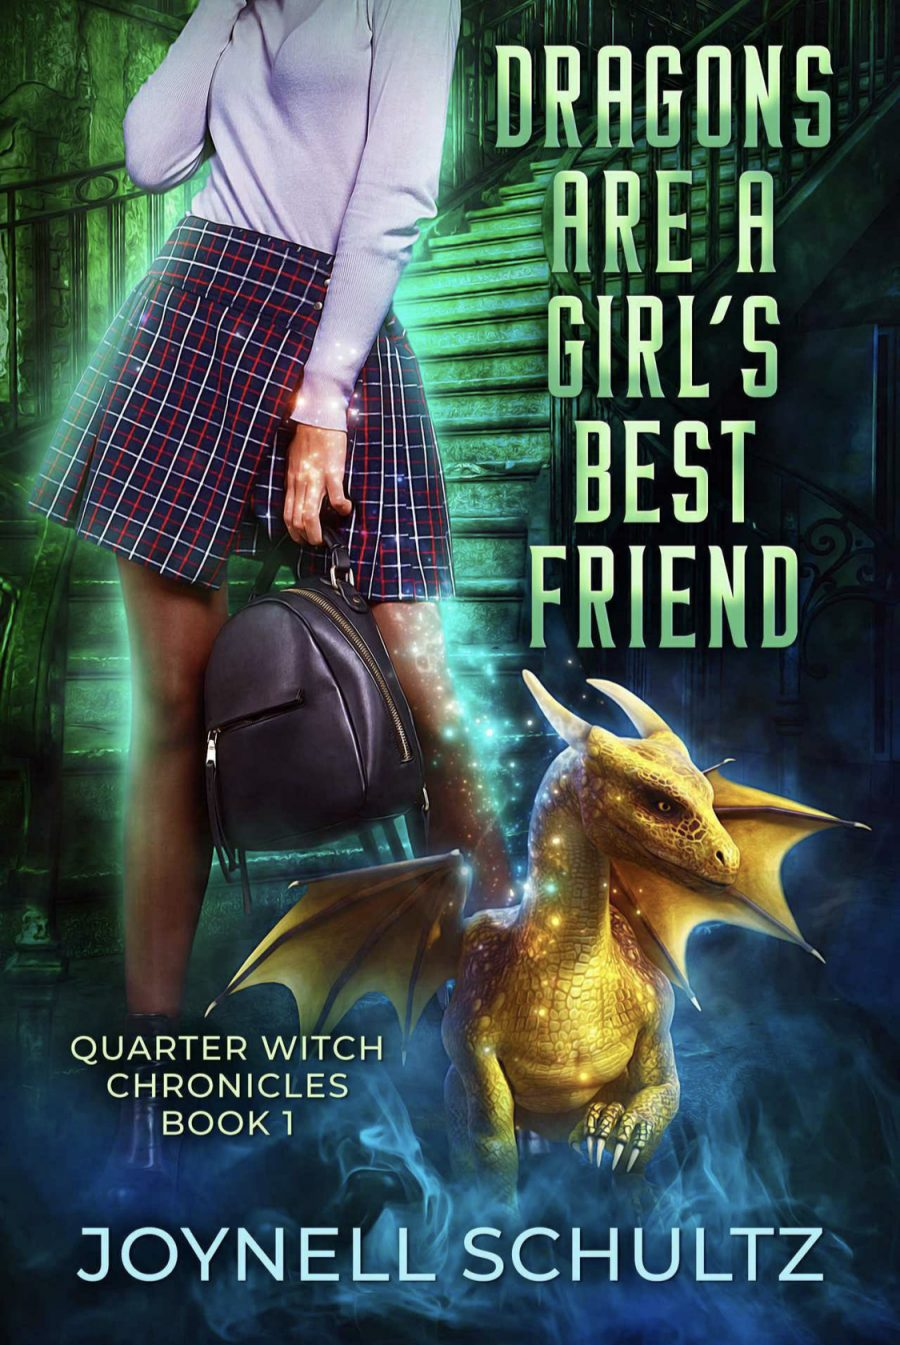 Dragon's are a Girl's Best Friend by Joynell Schultz - A Book Review #BookReview #Review #PNR #Paranormal #Romance #NewRelease #FirstInSeries #Witch #KU